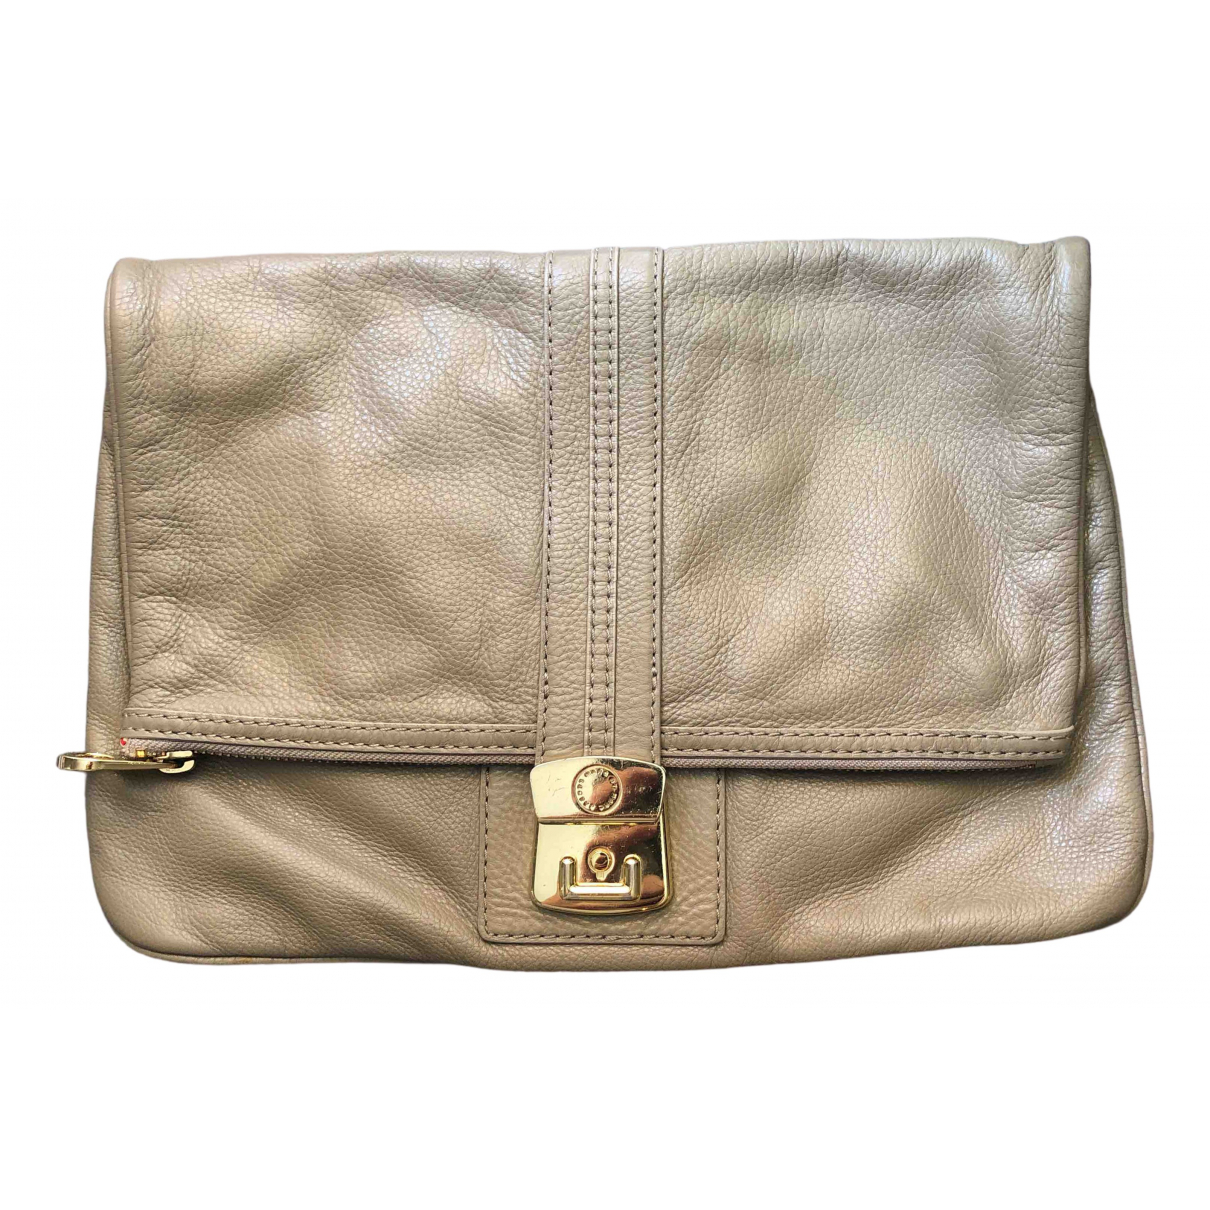 Marc By Marc Jacobs \N Beige Leather Clutch bag for Women \N